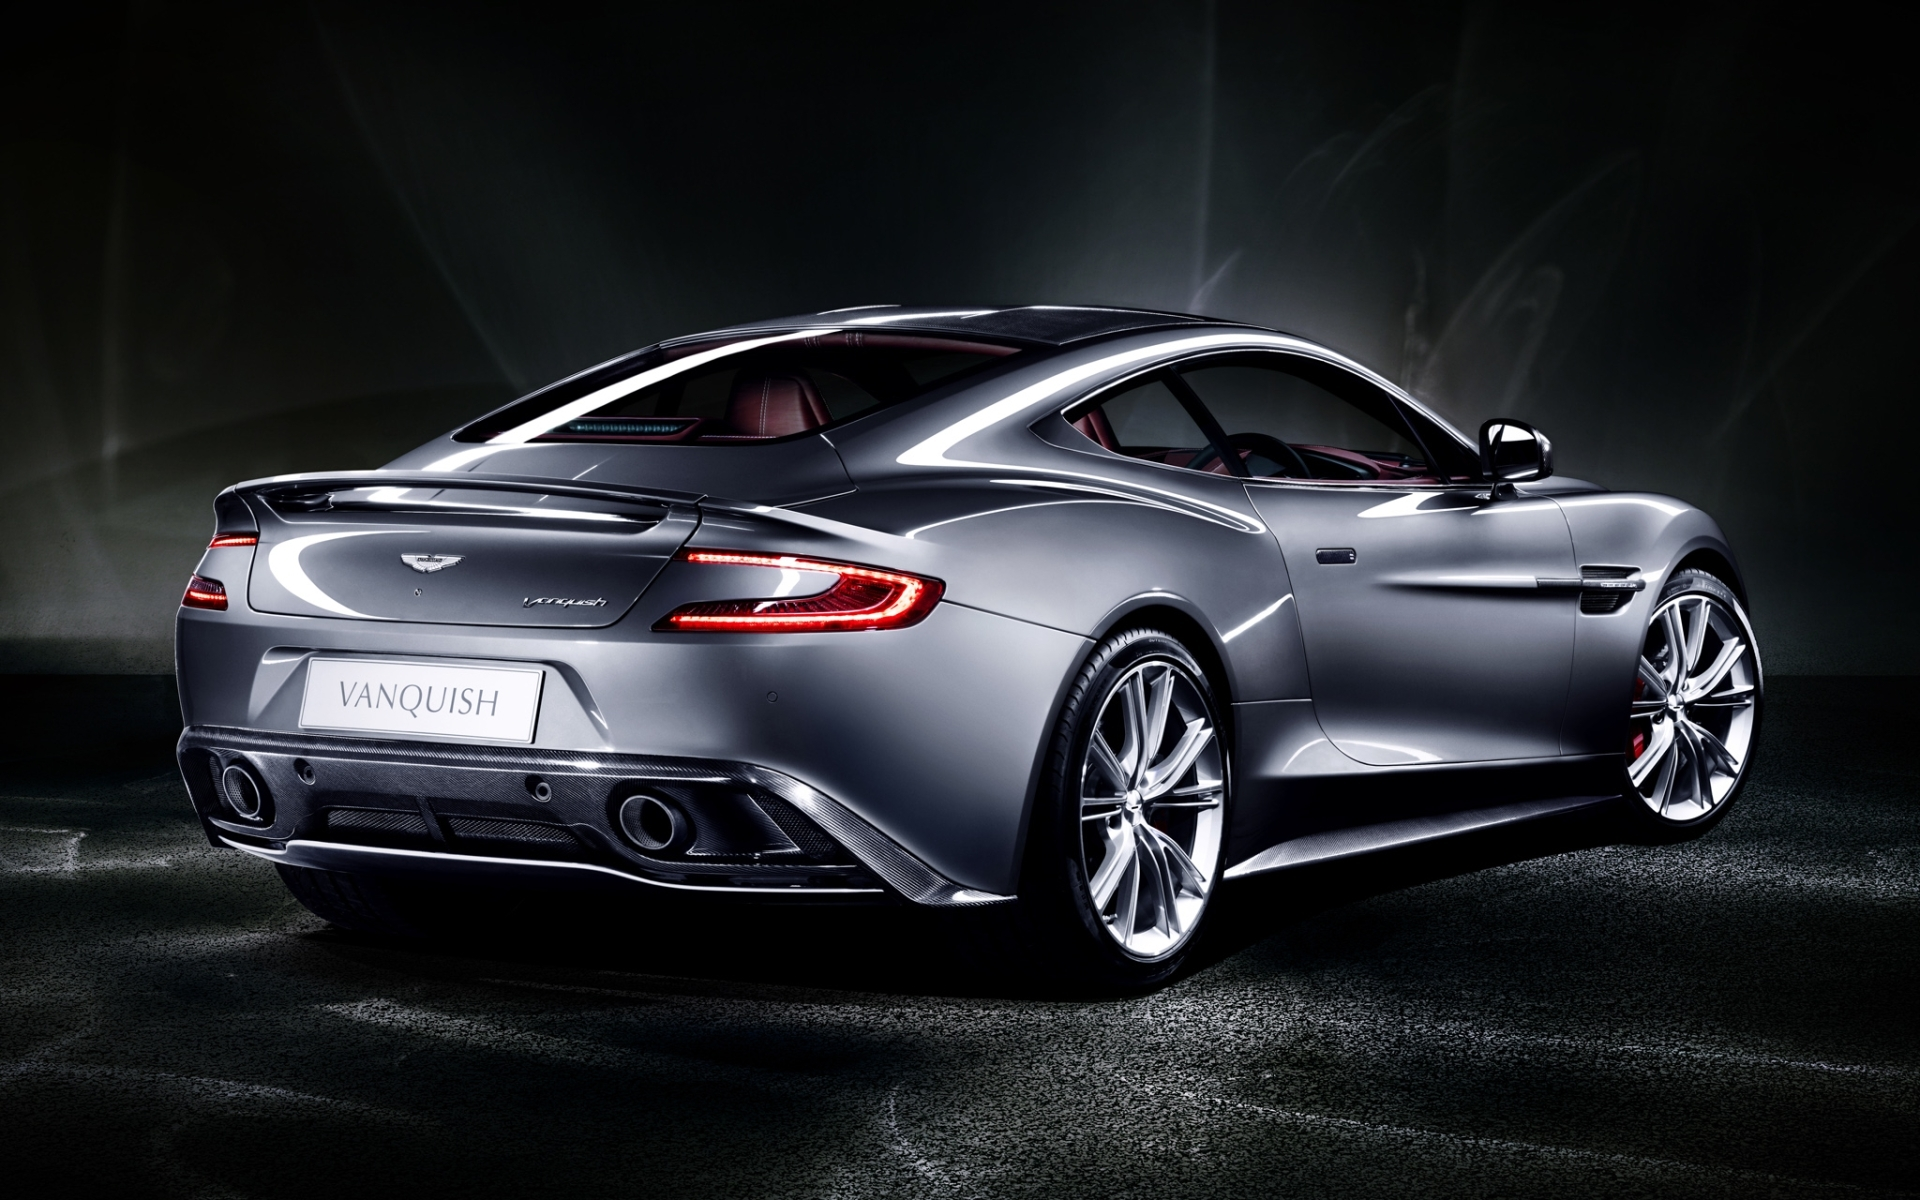 Aston Martin Vanquish Wallpapers, Pictures, Images